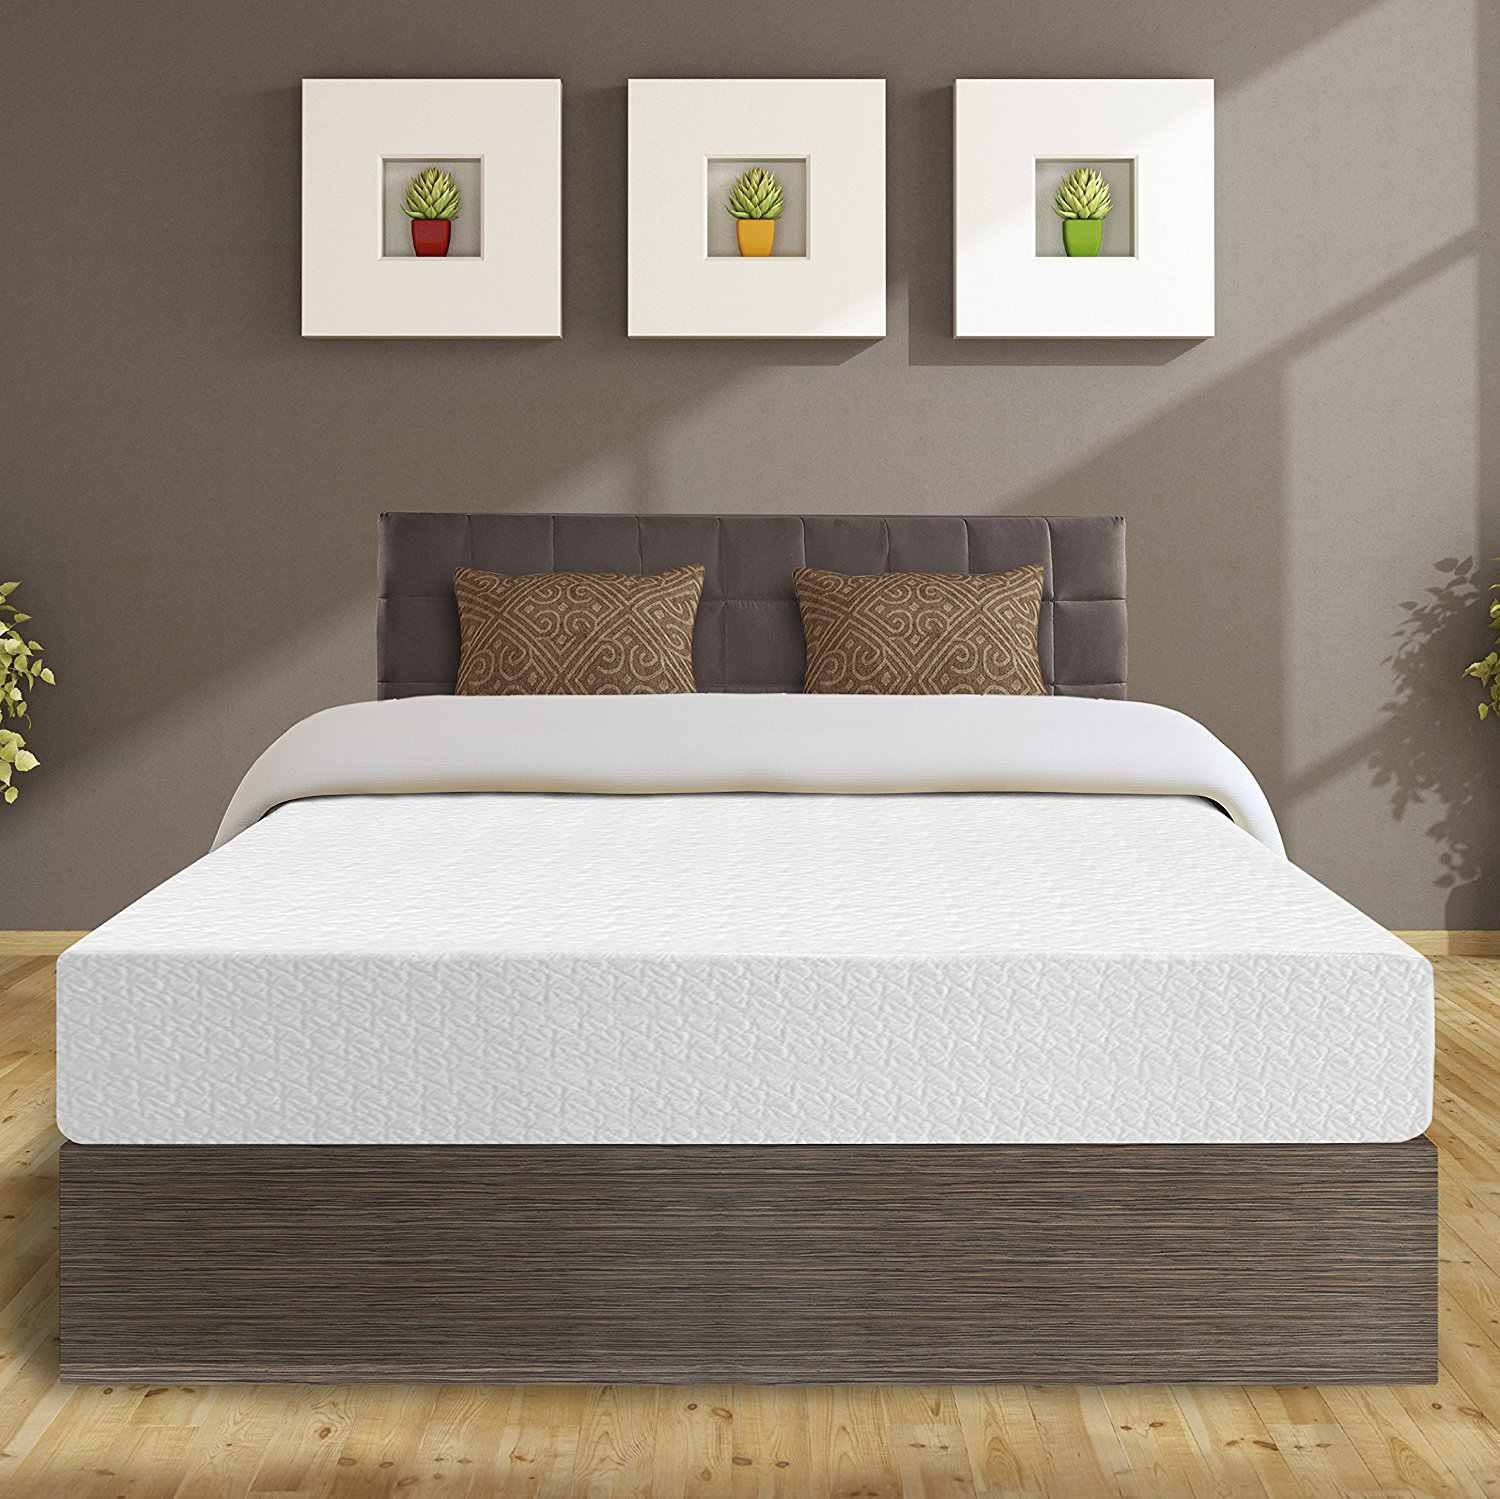 The Best Memory Foam Mattresses of 2018